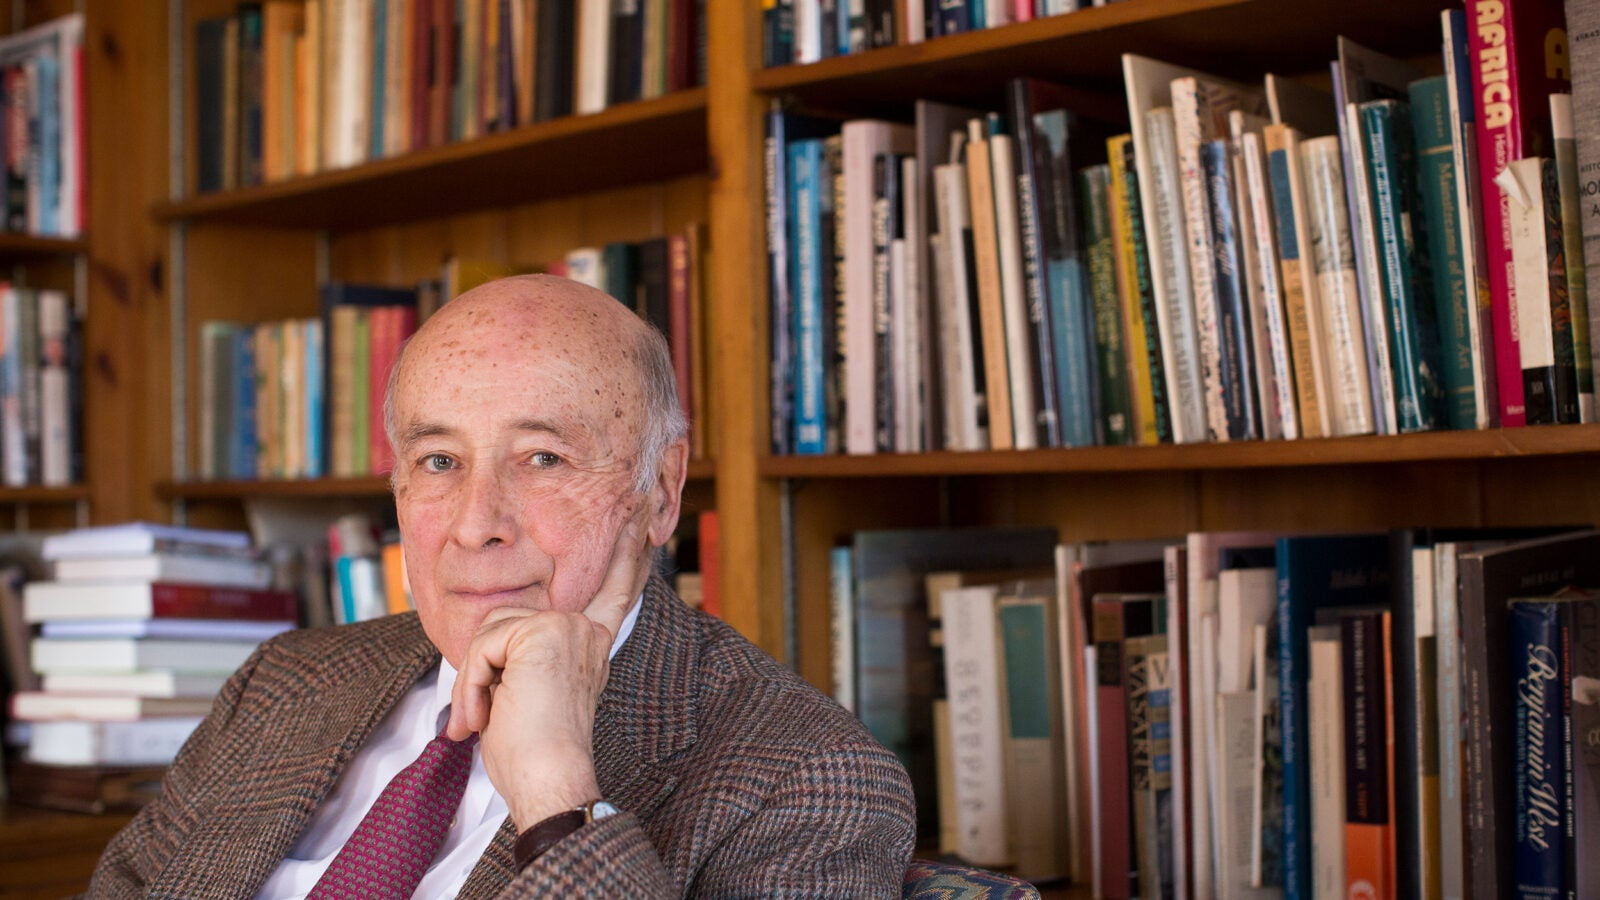 Joseph Nye in his office.